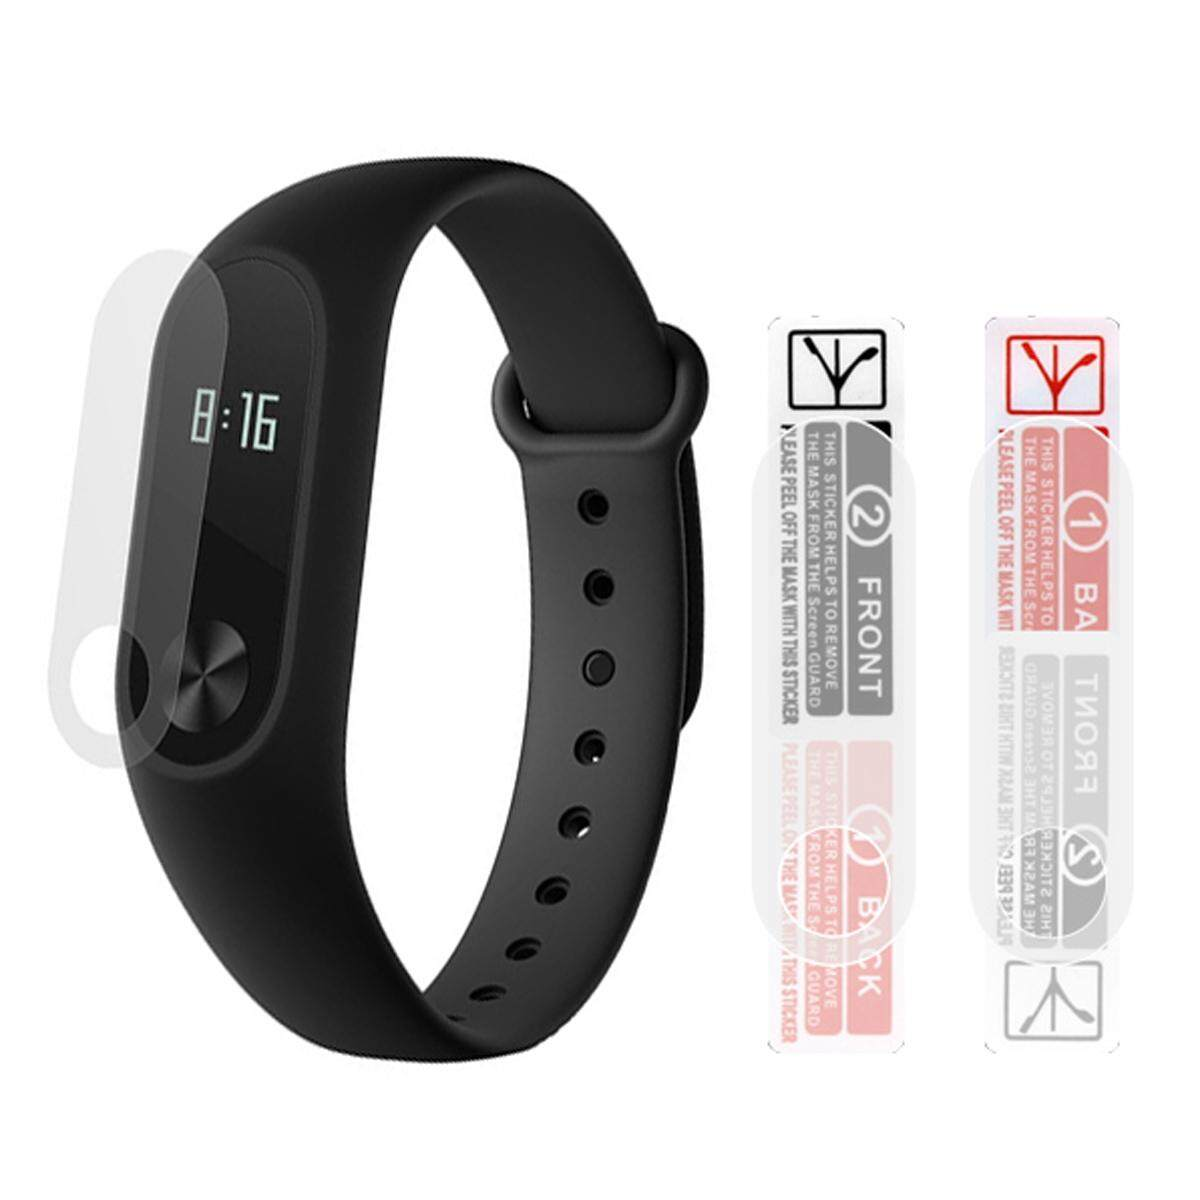 Buy Xiaomi Fitness Trackers Wearables Mi Band 3 Oled Display Free Screen Guard 2 Smart Wristband W 042 Touch Black